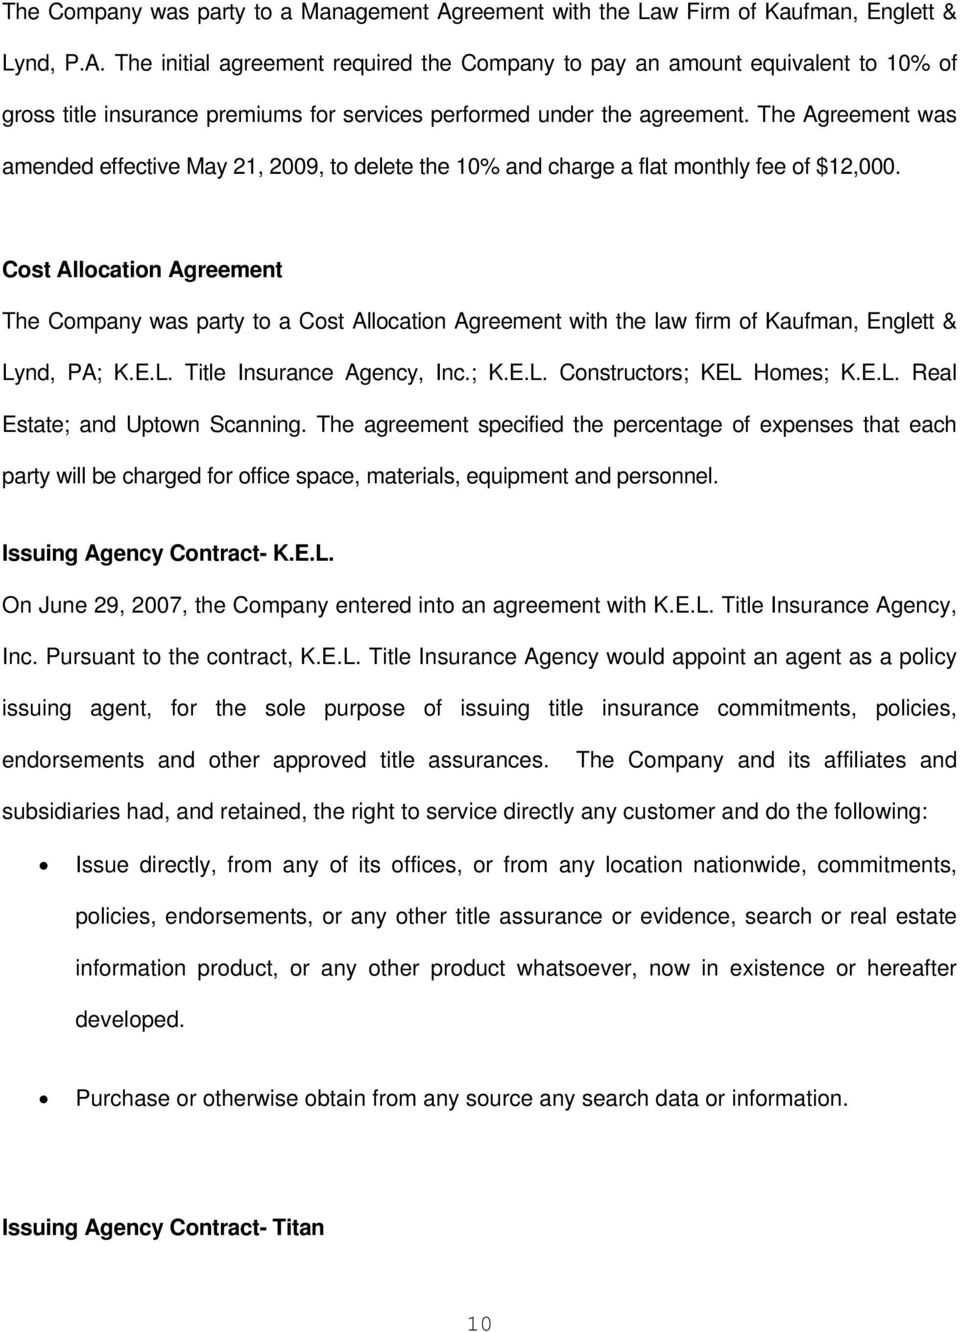 Cost Allocation Agreement The Company was party to a Cost Allocation Agreement with the law firm of Kaufman, Englett & Lynd, PA; K.E.L. Title Insurance Agency, Inc.; K.E.L. Constructors; KEL Homes; K.